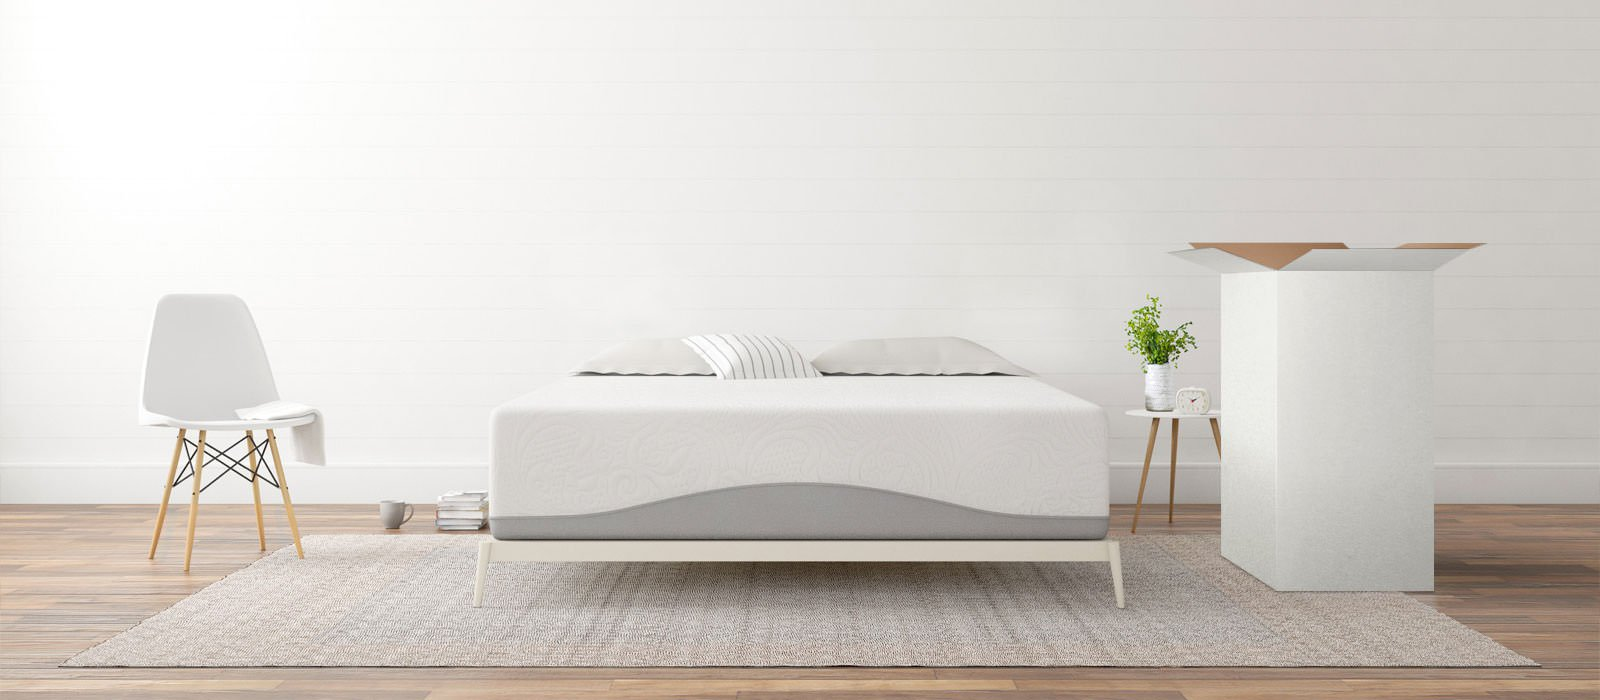 Beds Memory Foam Mattress The Facts On Memory Foam And Off Gassing